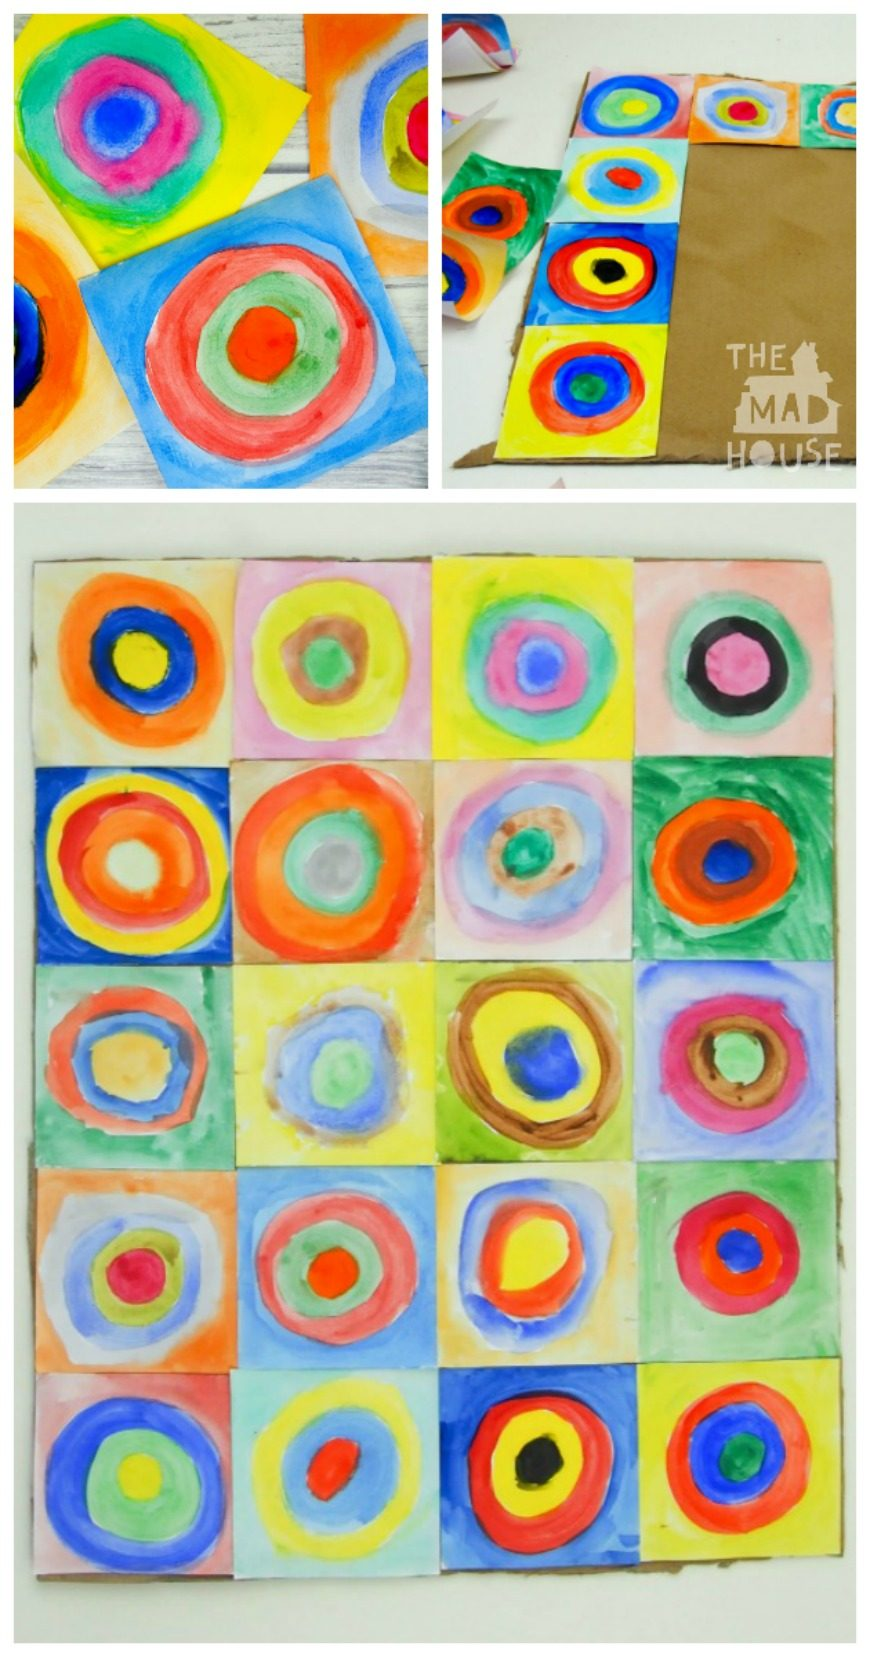 This beautiful piece of collaborative art is inspired by the works of Vasily Kandinsky. It is a fantastic way to introduce children to the work of an artist and a fun craft DIY for all the family. Kandinsky for kids - concentric circles in squares